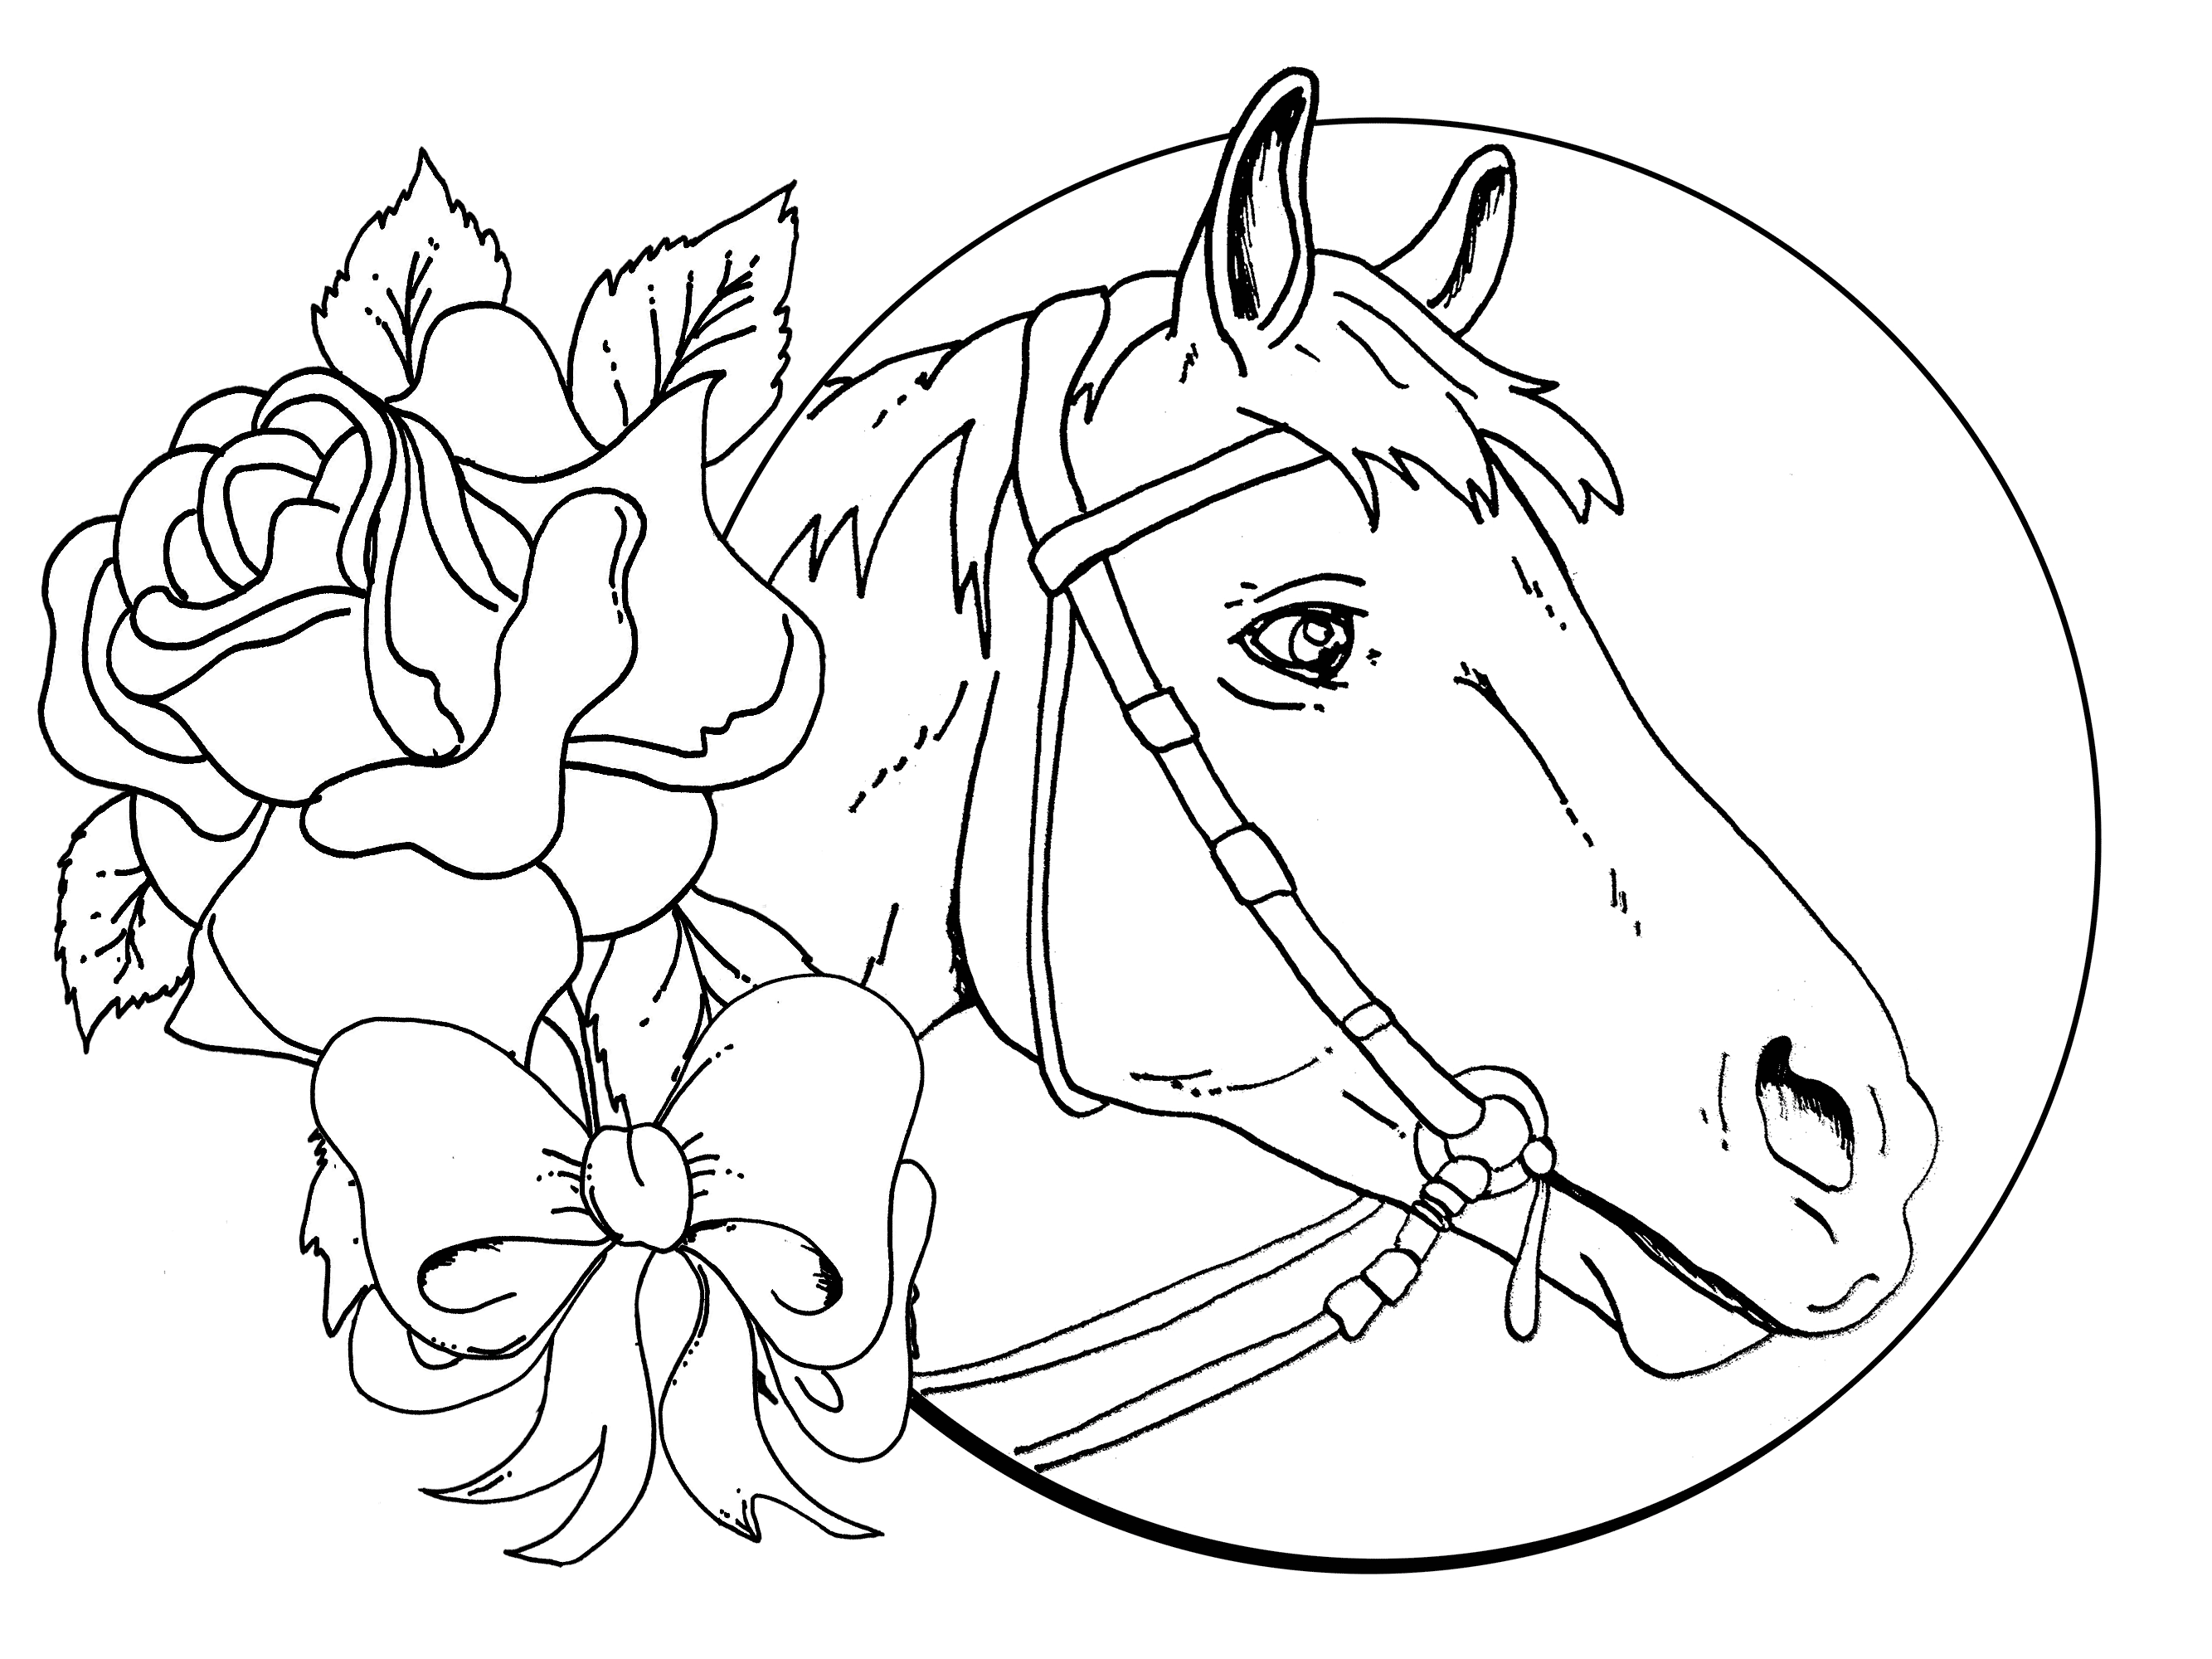 Fun Coloring Pages for Girl